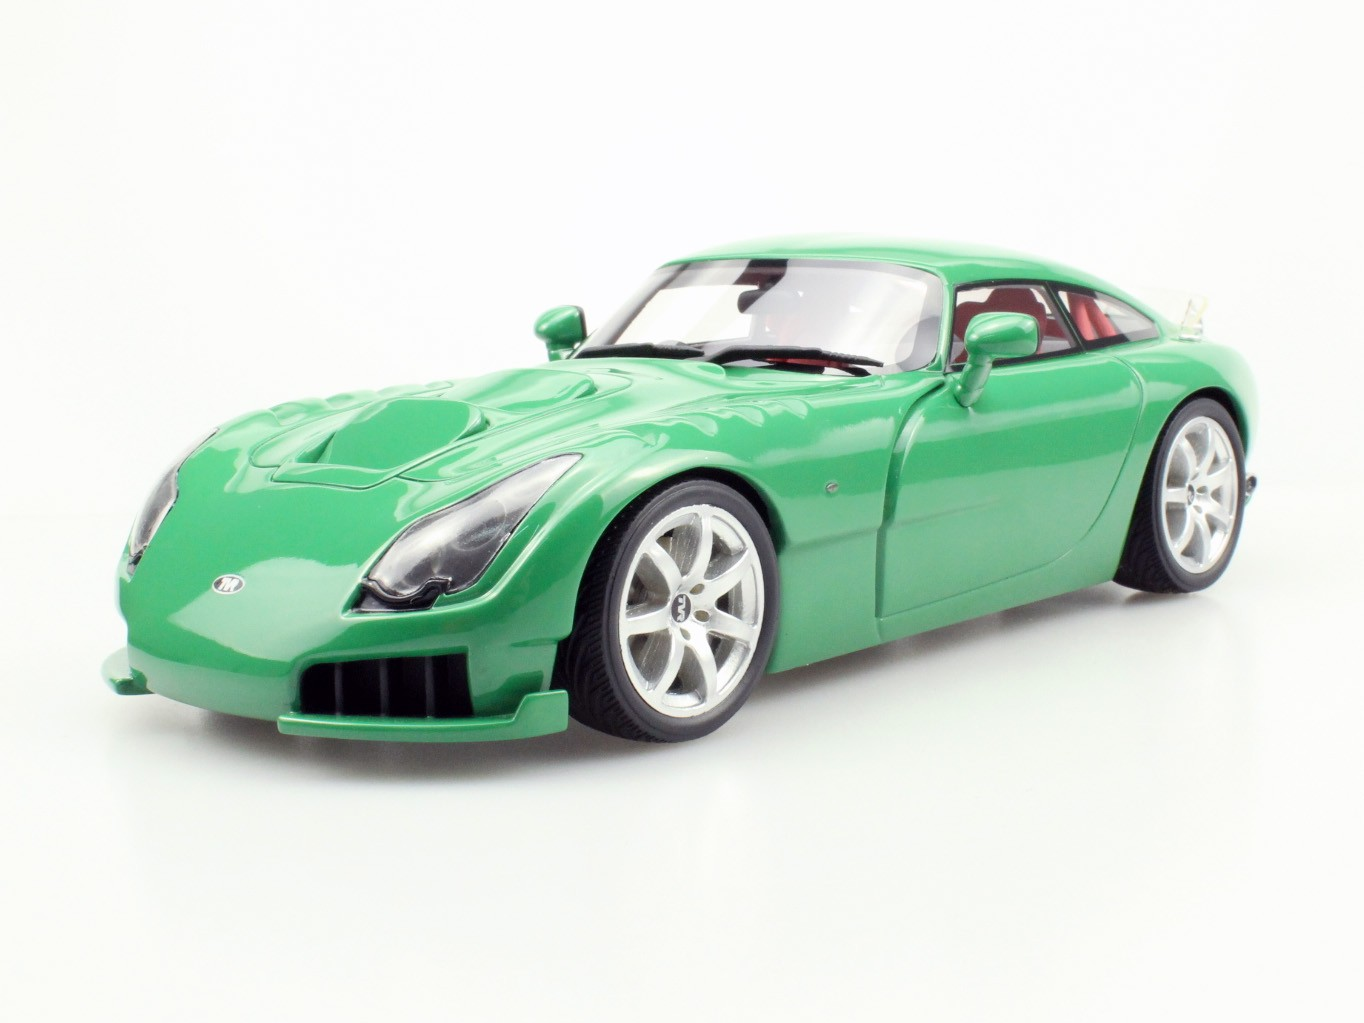 LS Collectibles 1:18 2005年モデル TVR サガリス2005 TVR Sagaris 1/18 by LS Collectibles EUR